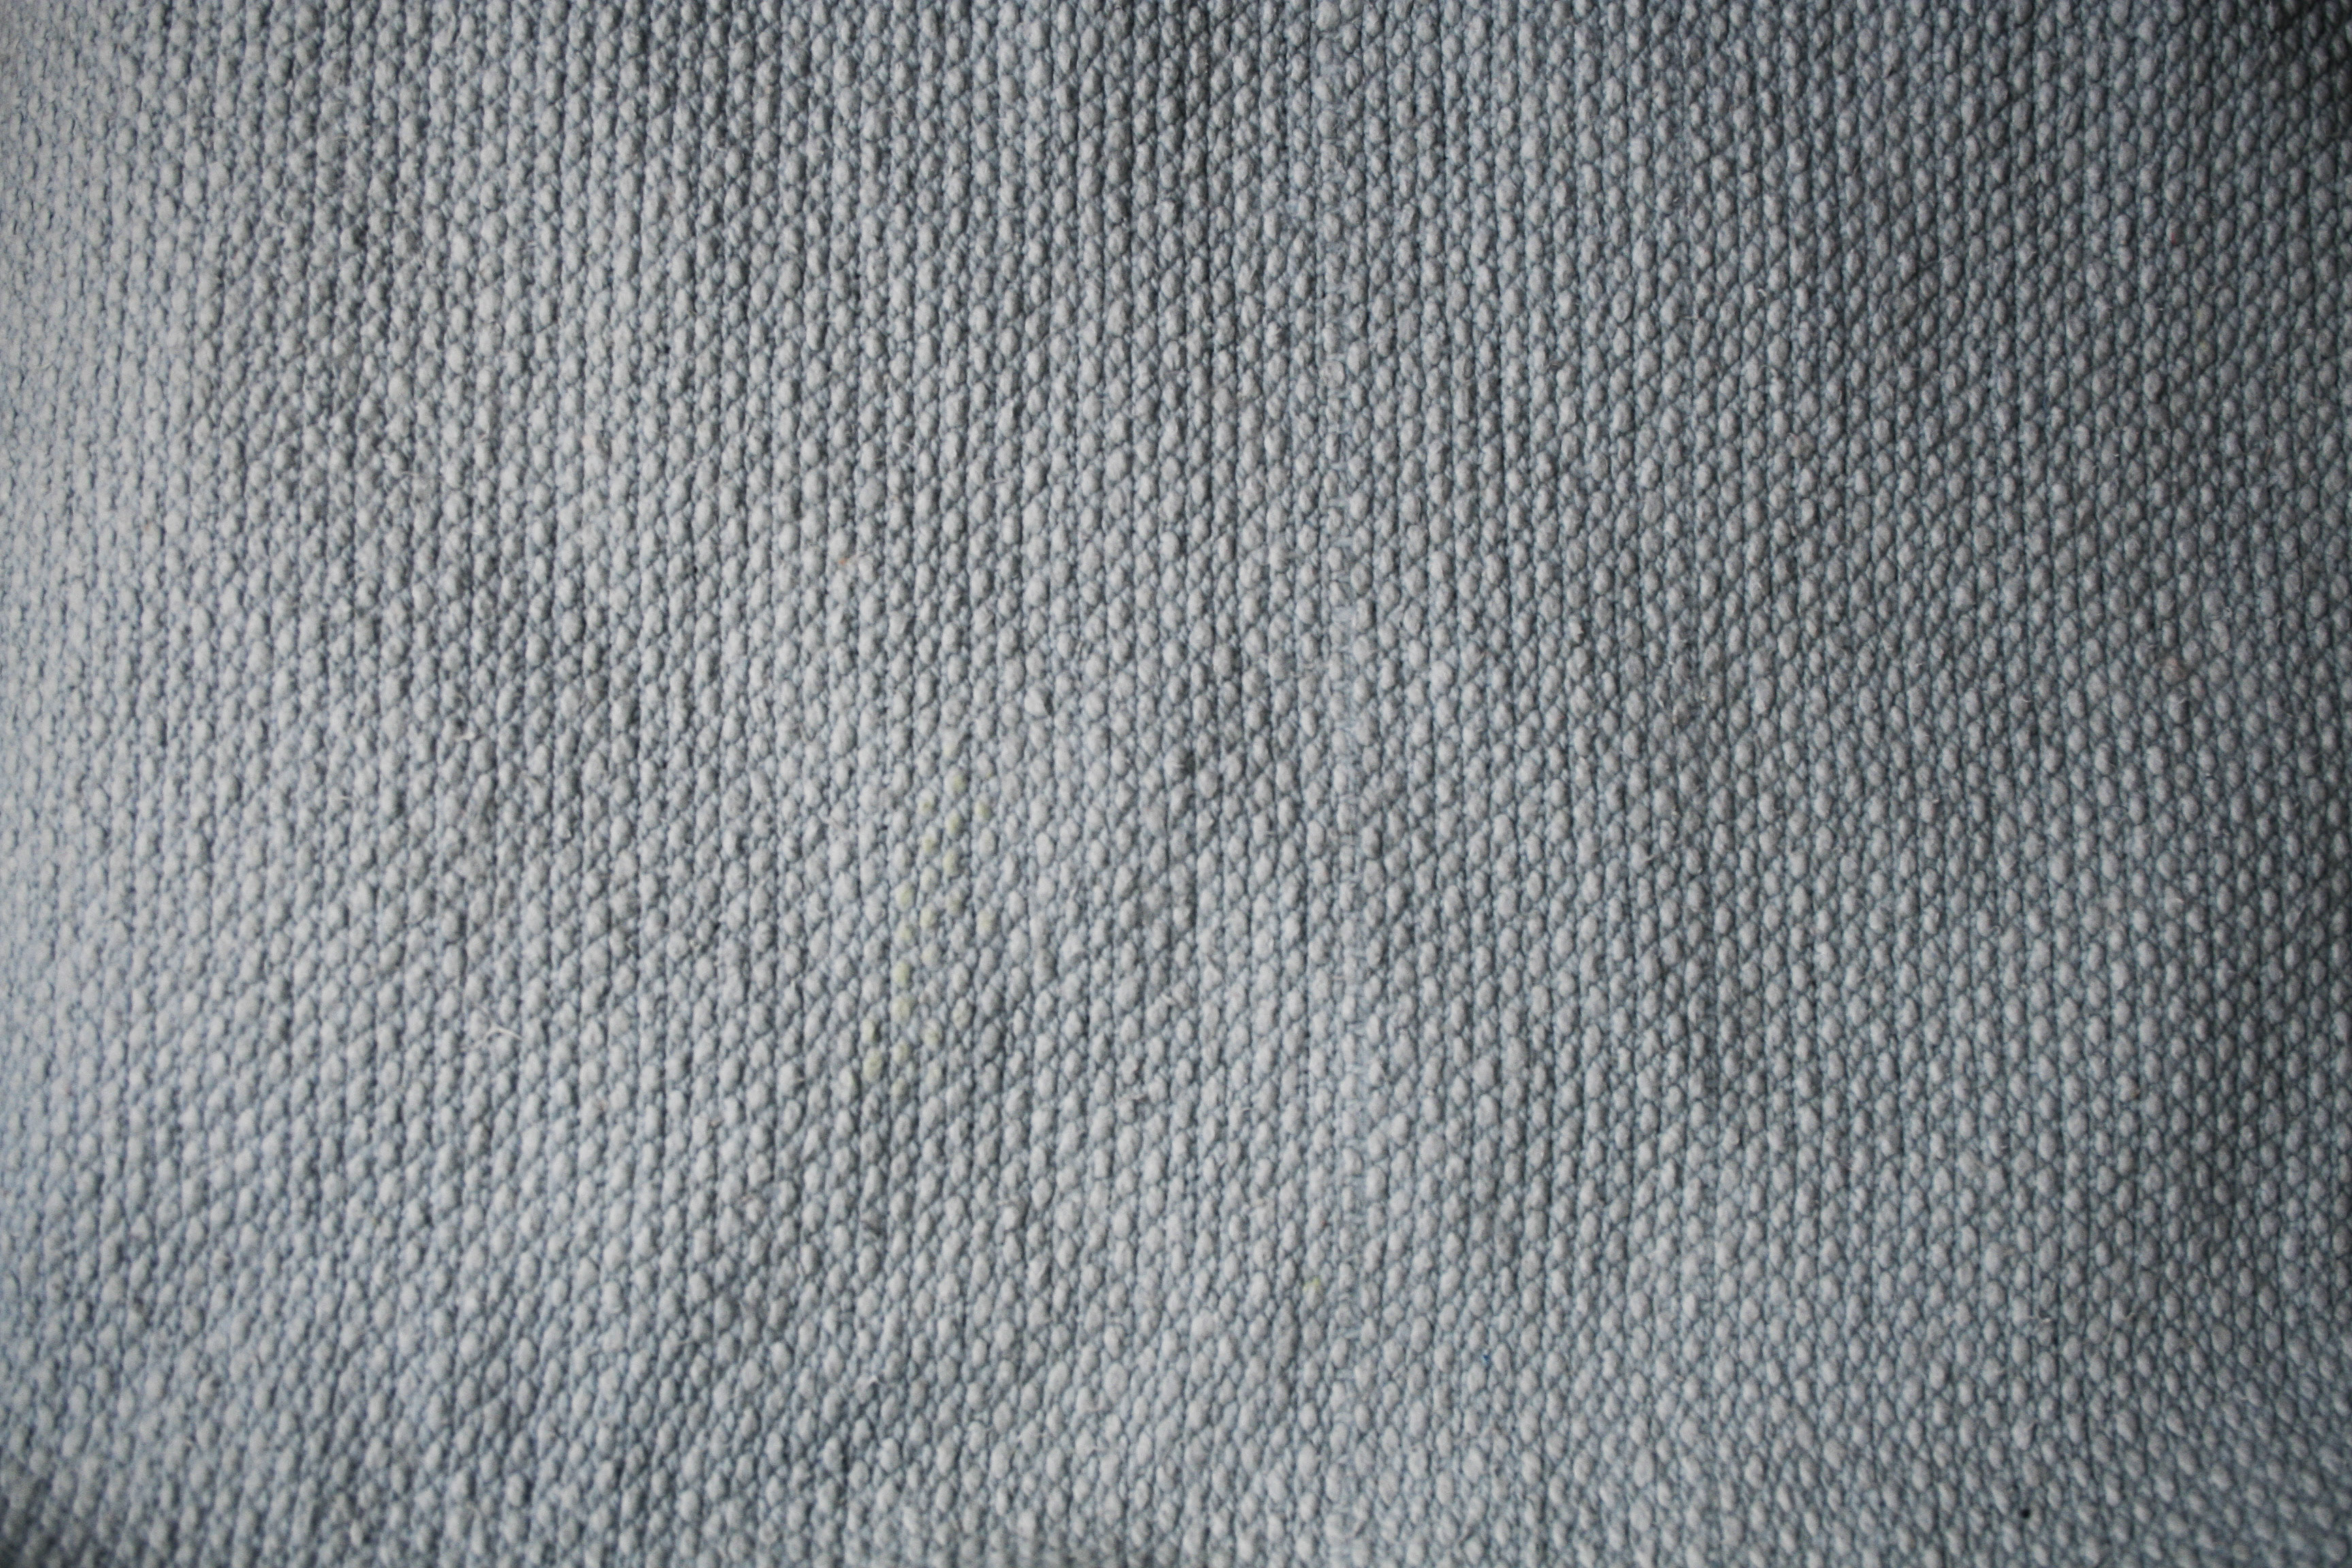 Reticular Textile Texture Textures For Photoshop Free